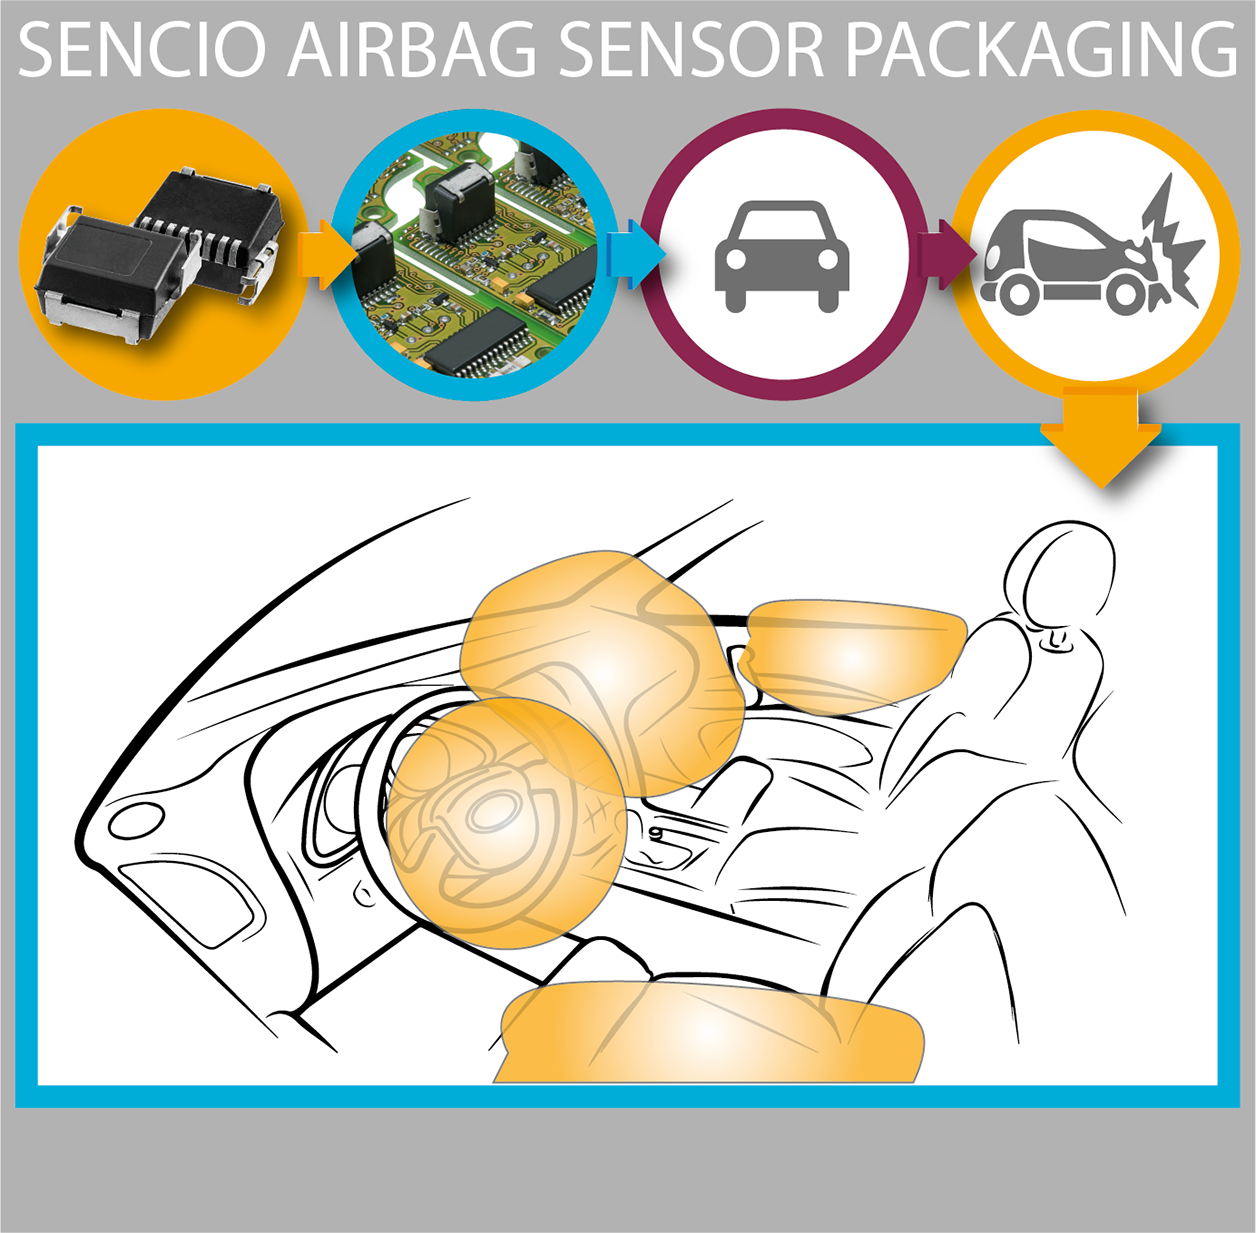 Airbag sensor package